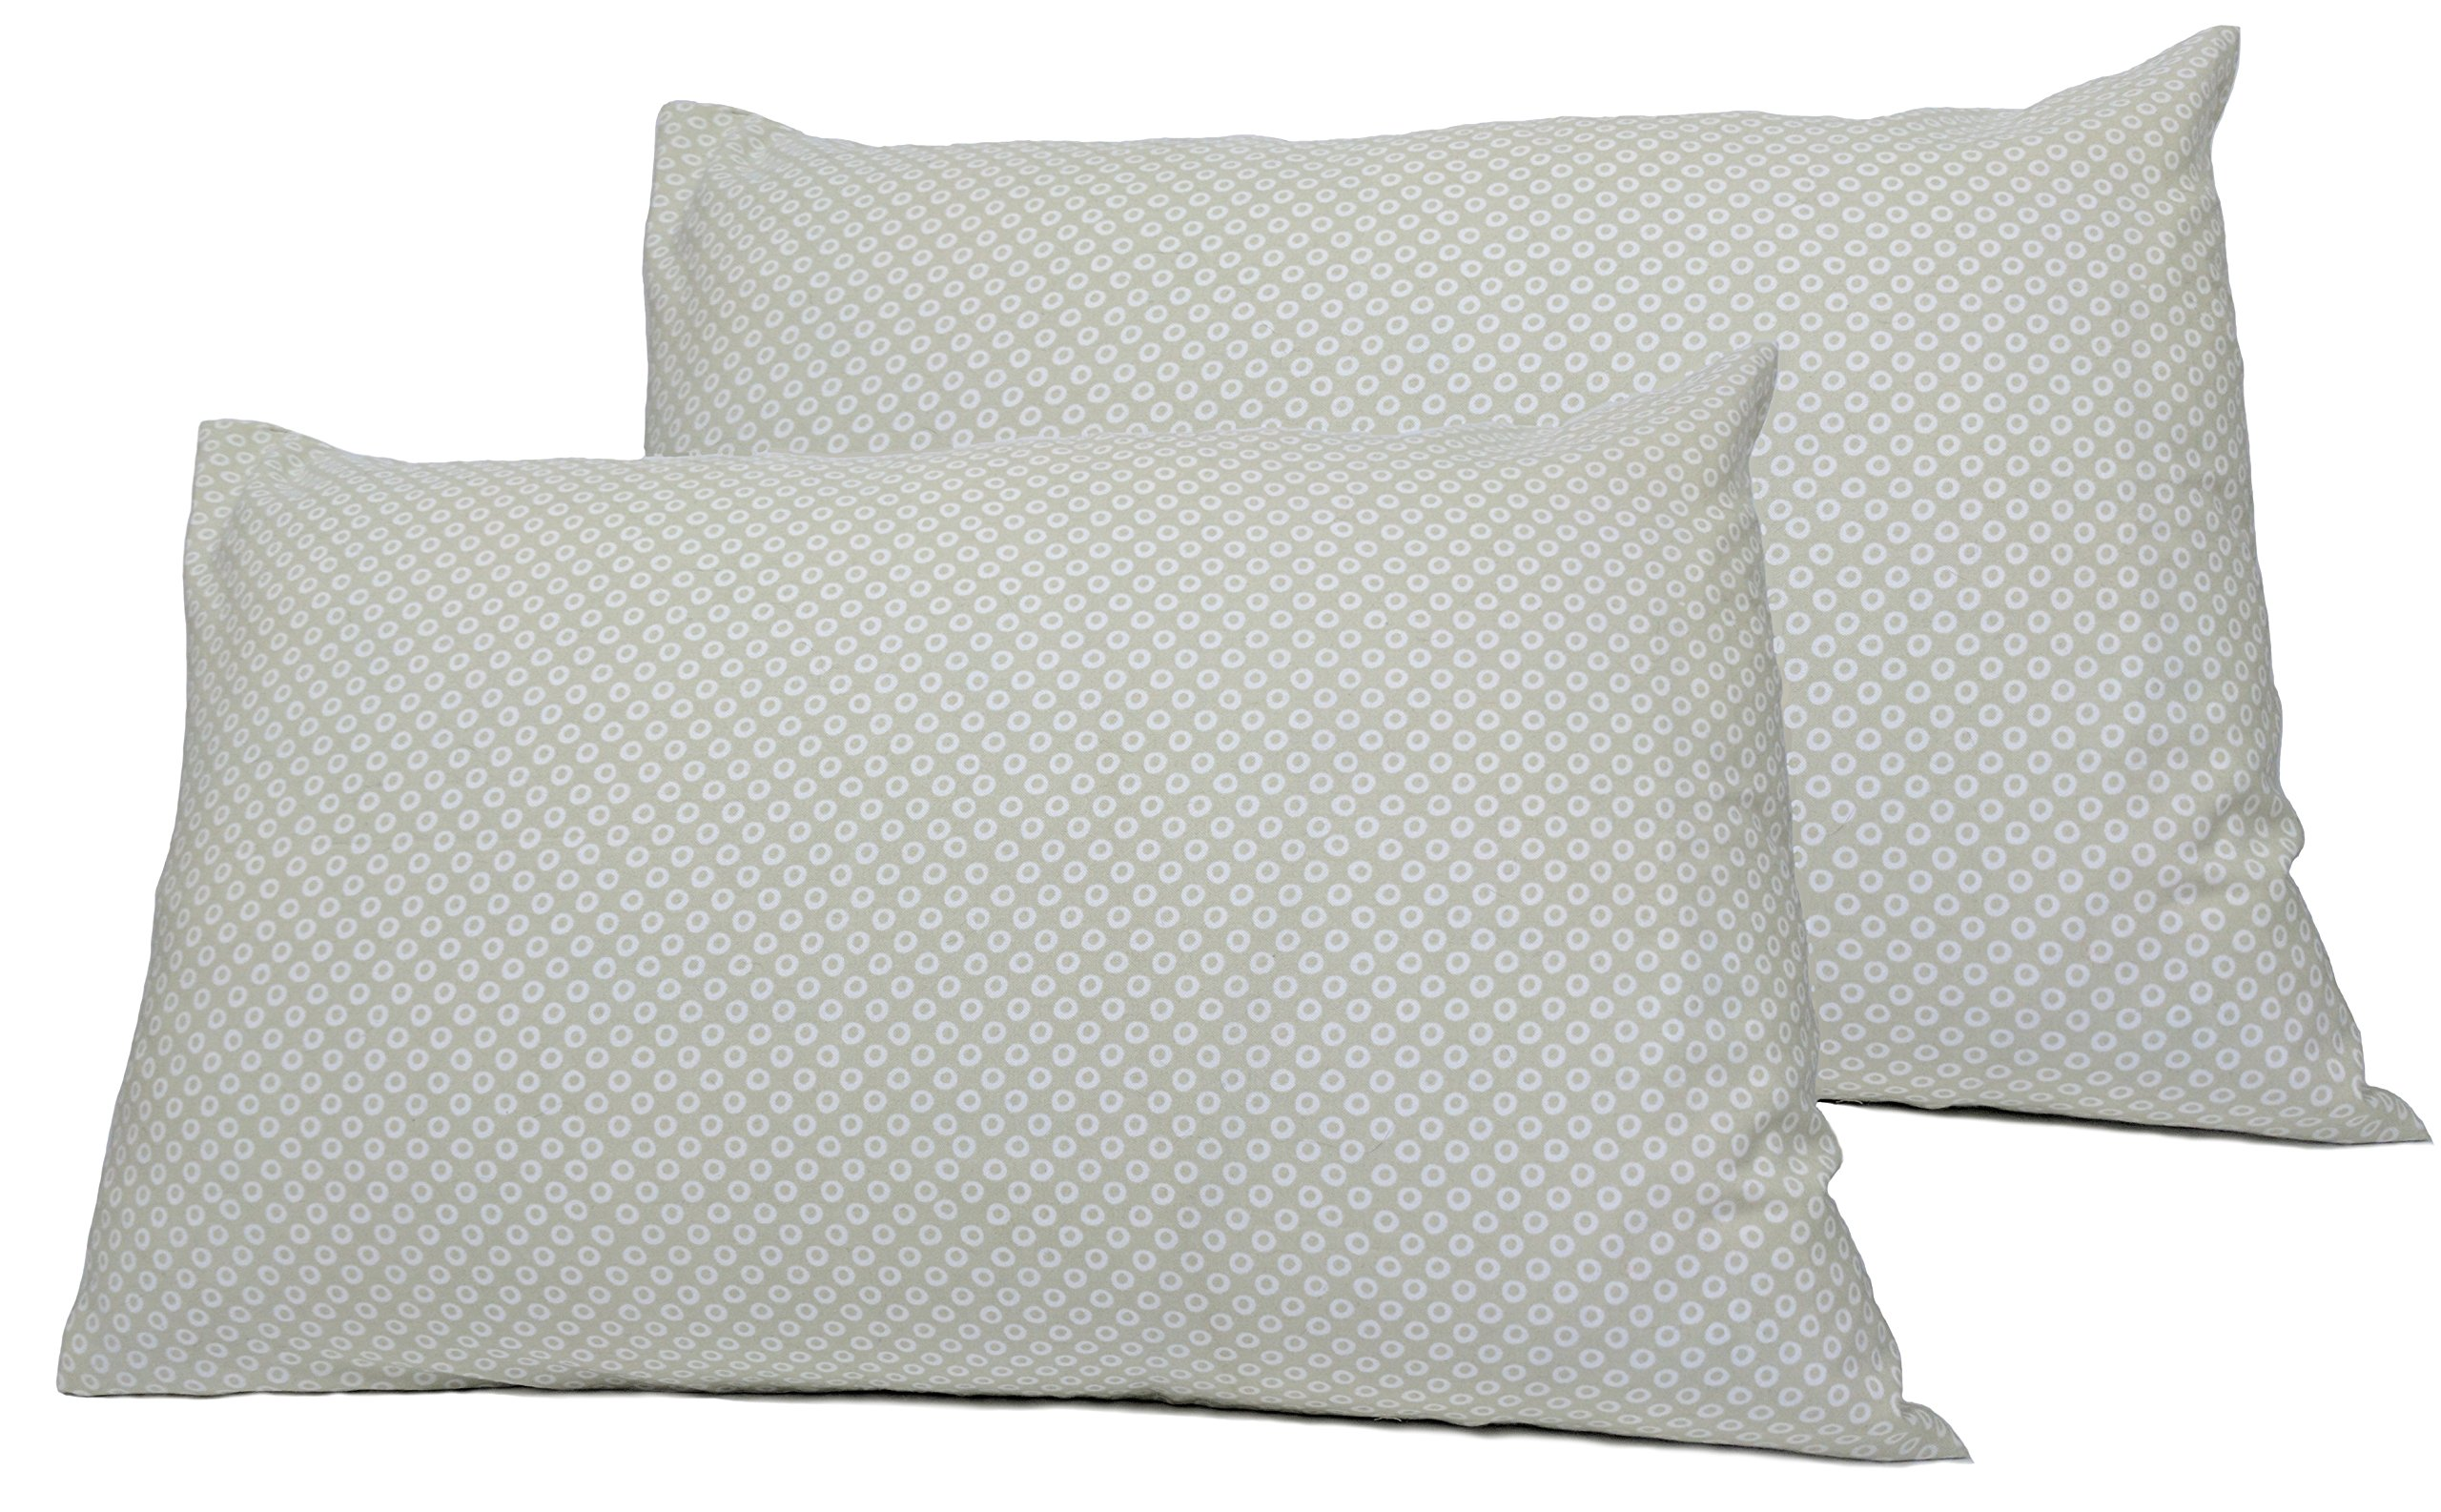 2 Toddler or Travel Pillowcases in Organic Cotton to Fit 13 x 18 and 14 x 19 Pillow, Shibori Print (Grey)